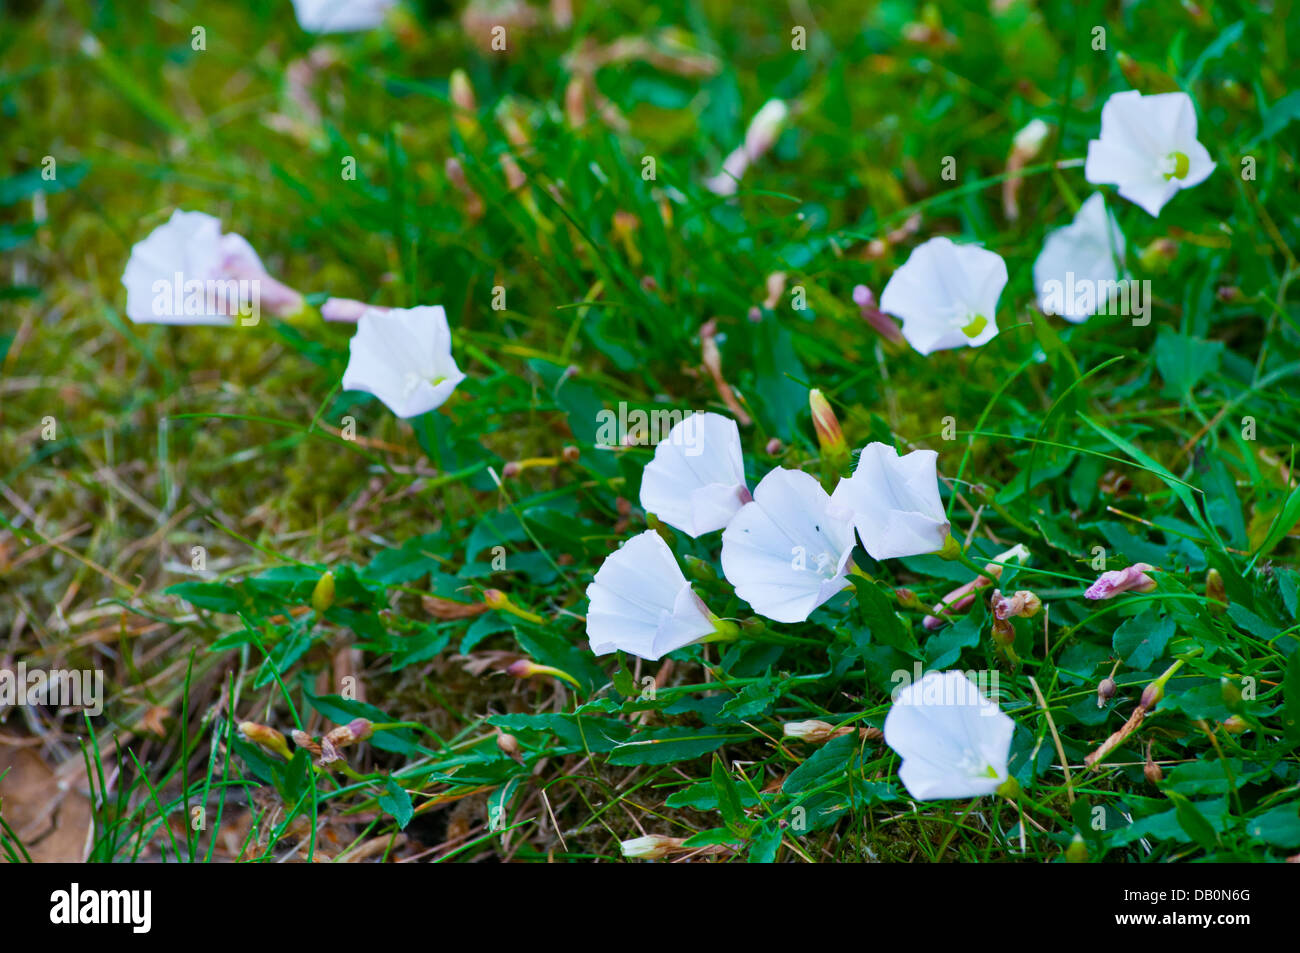 Field Bindweed in lawn - Stock Image